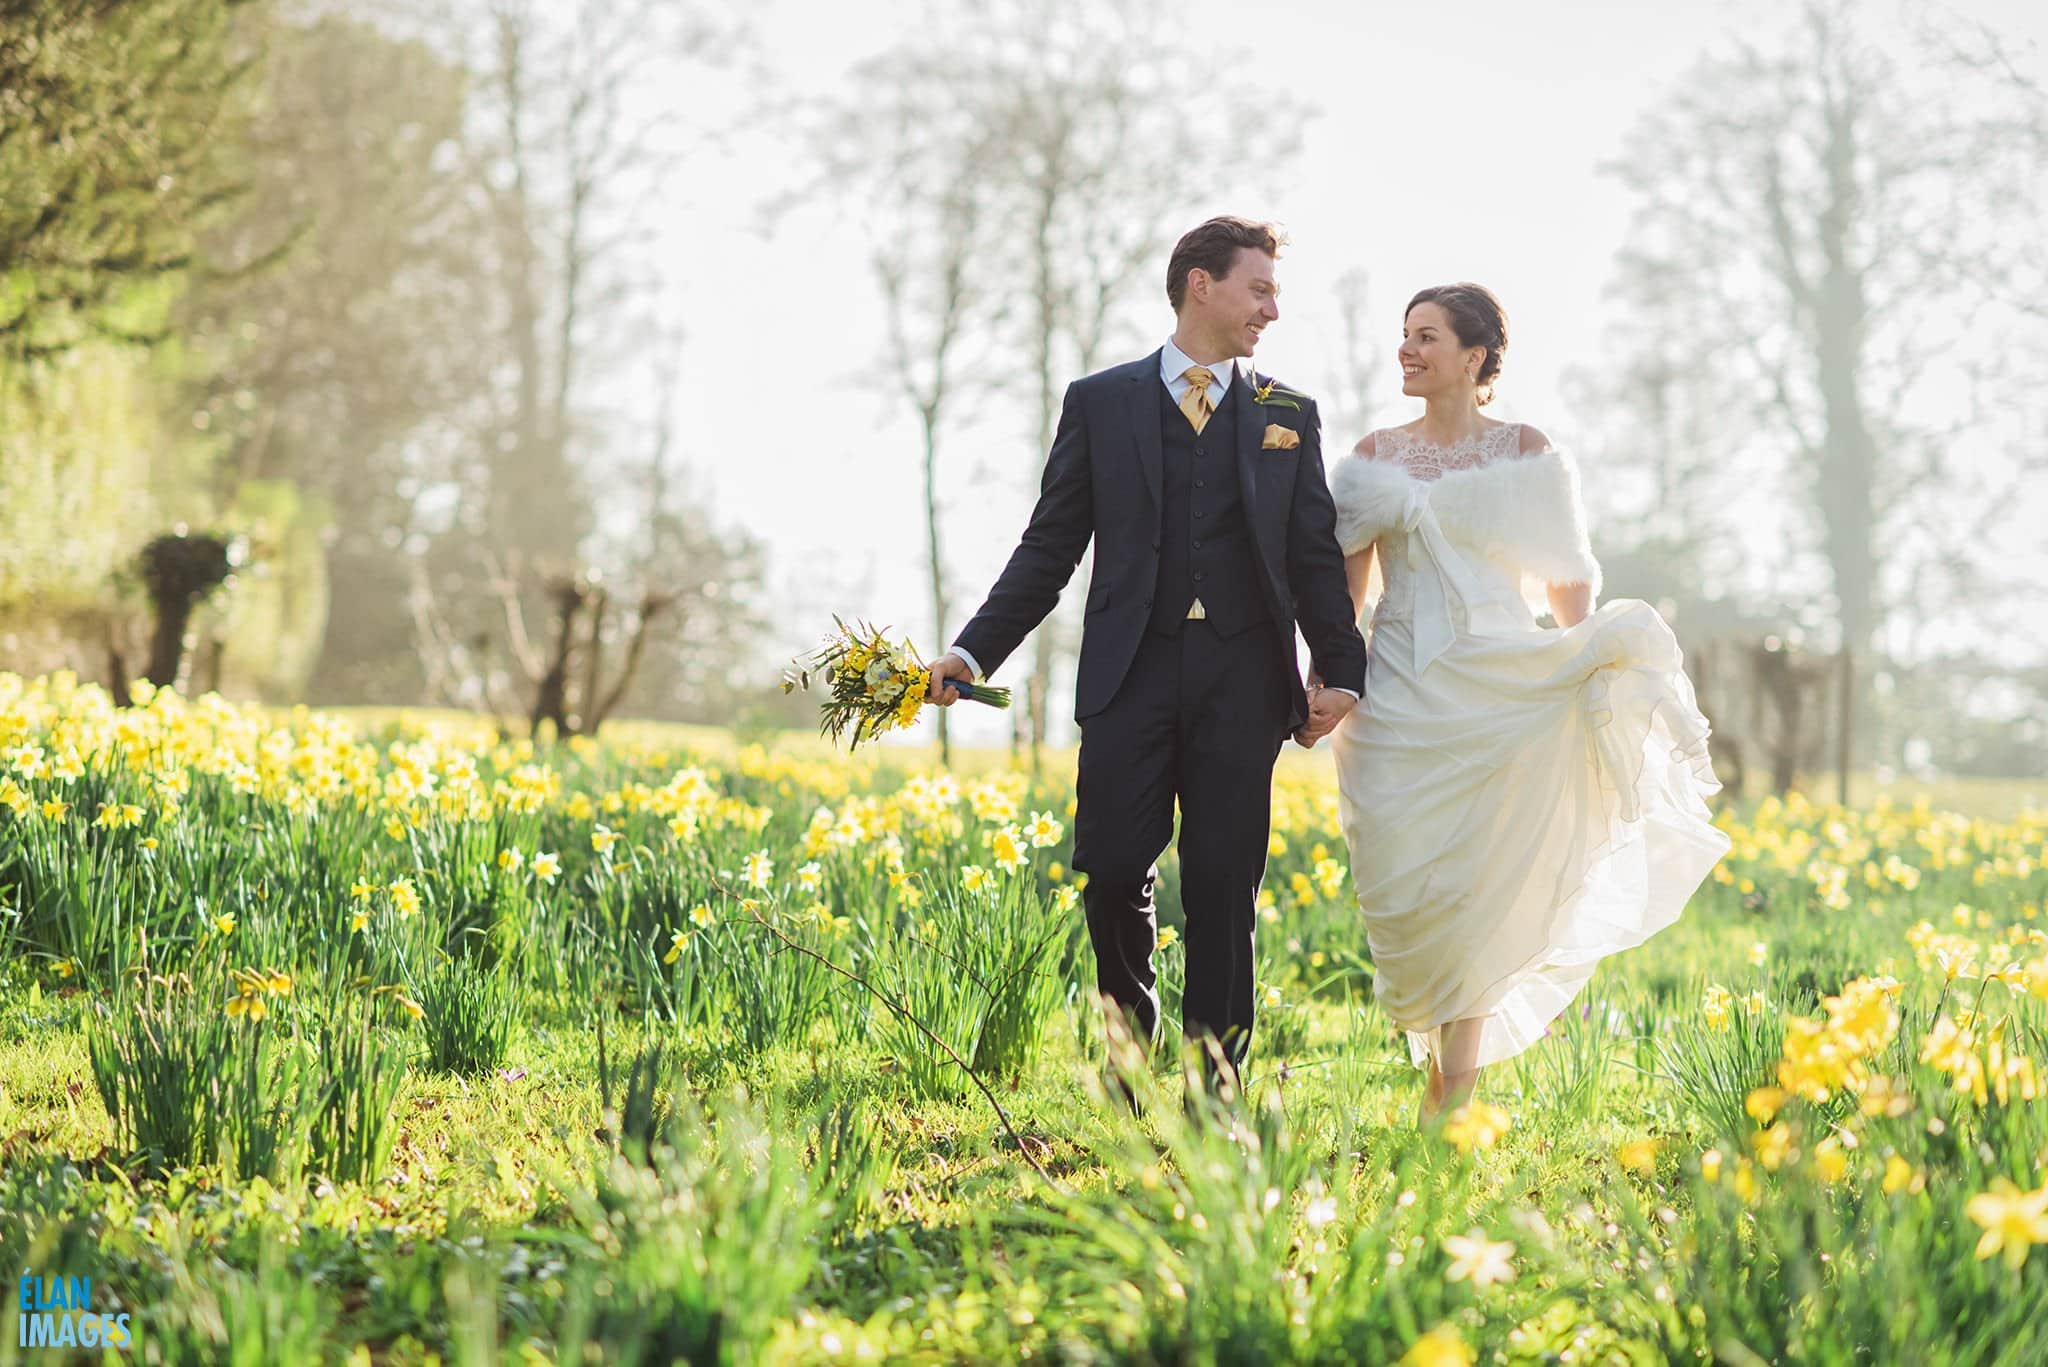 Spring Wedding in the daffodils at Coombe Lodge Blagdon